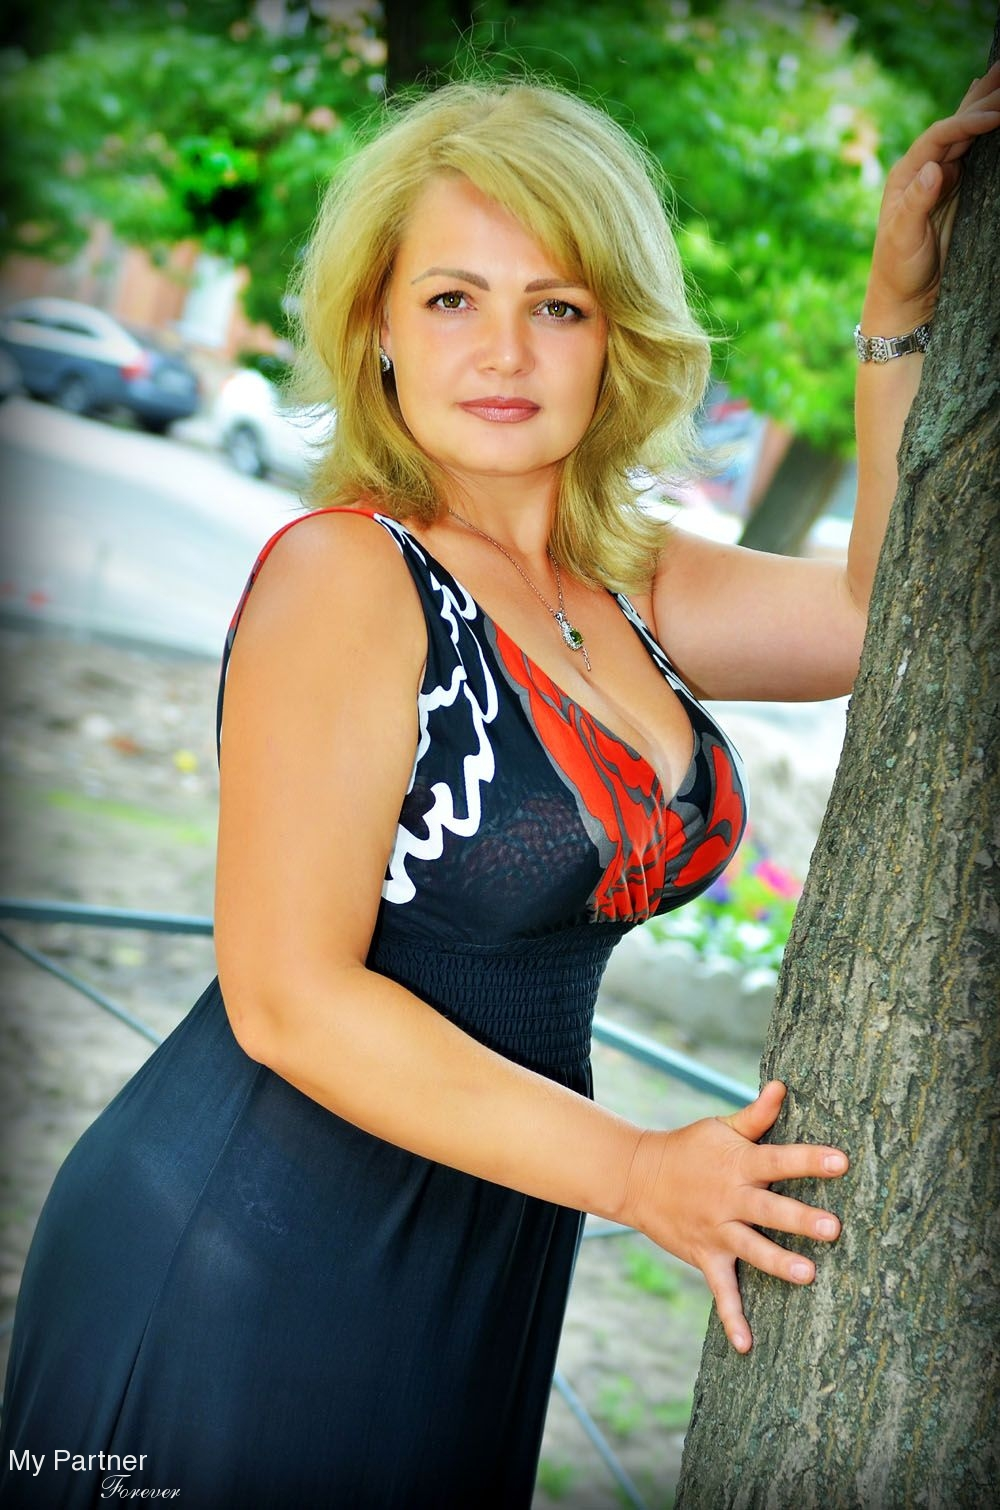 martville divorced singles personals Free classified ads for personals and  log in help post an ad (free) russian singles search all  i am searching for my god-given partner i am divorced,.